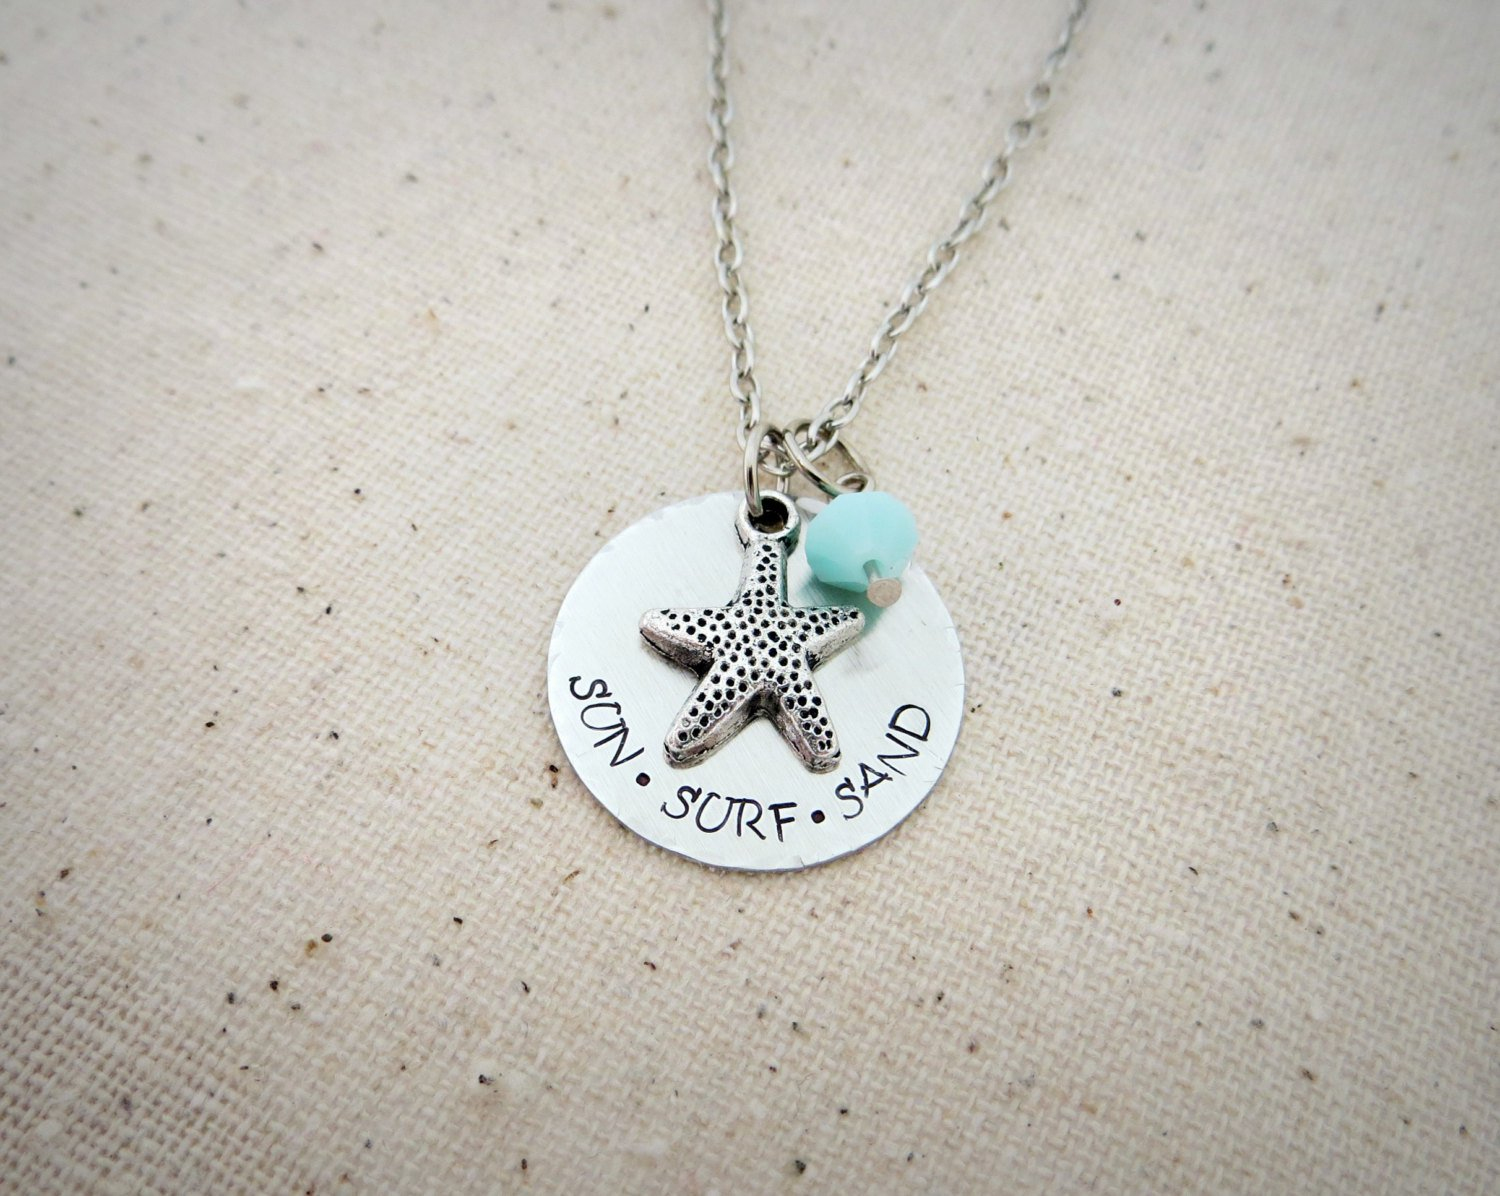 Sun Surf Sand Hand Stamped Charm Necklace With Star Fish and Swarovski (Silver, 18 inches)